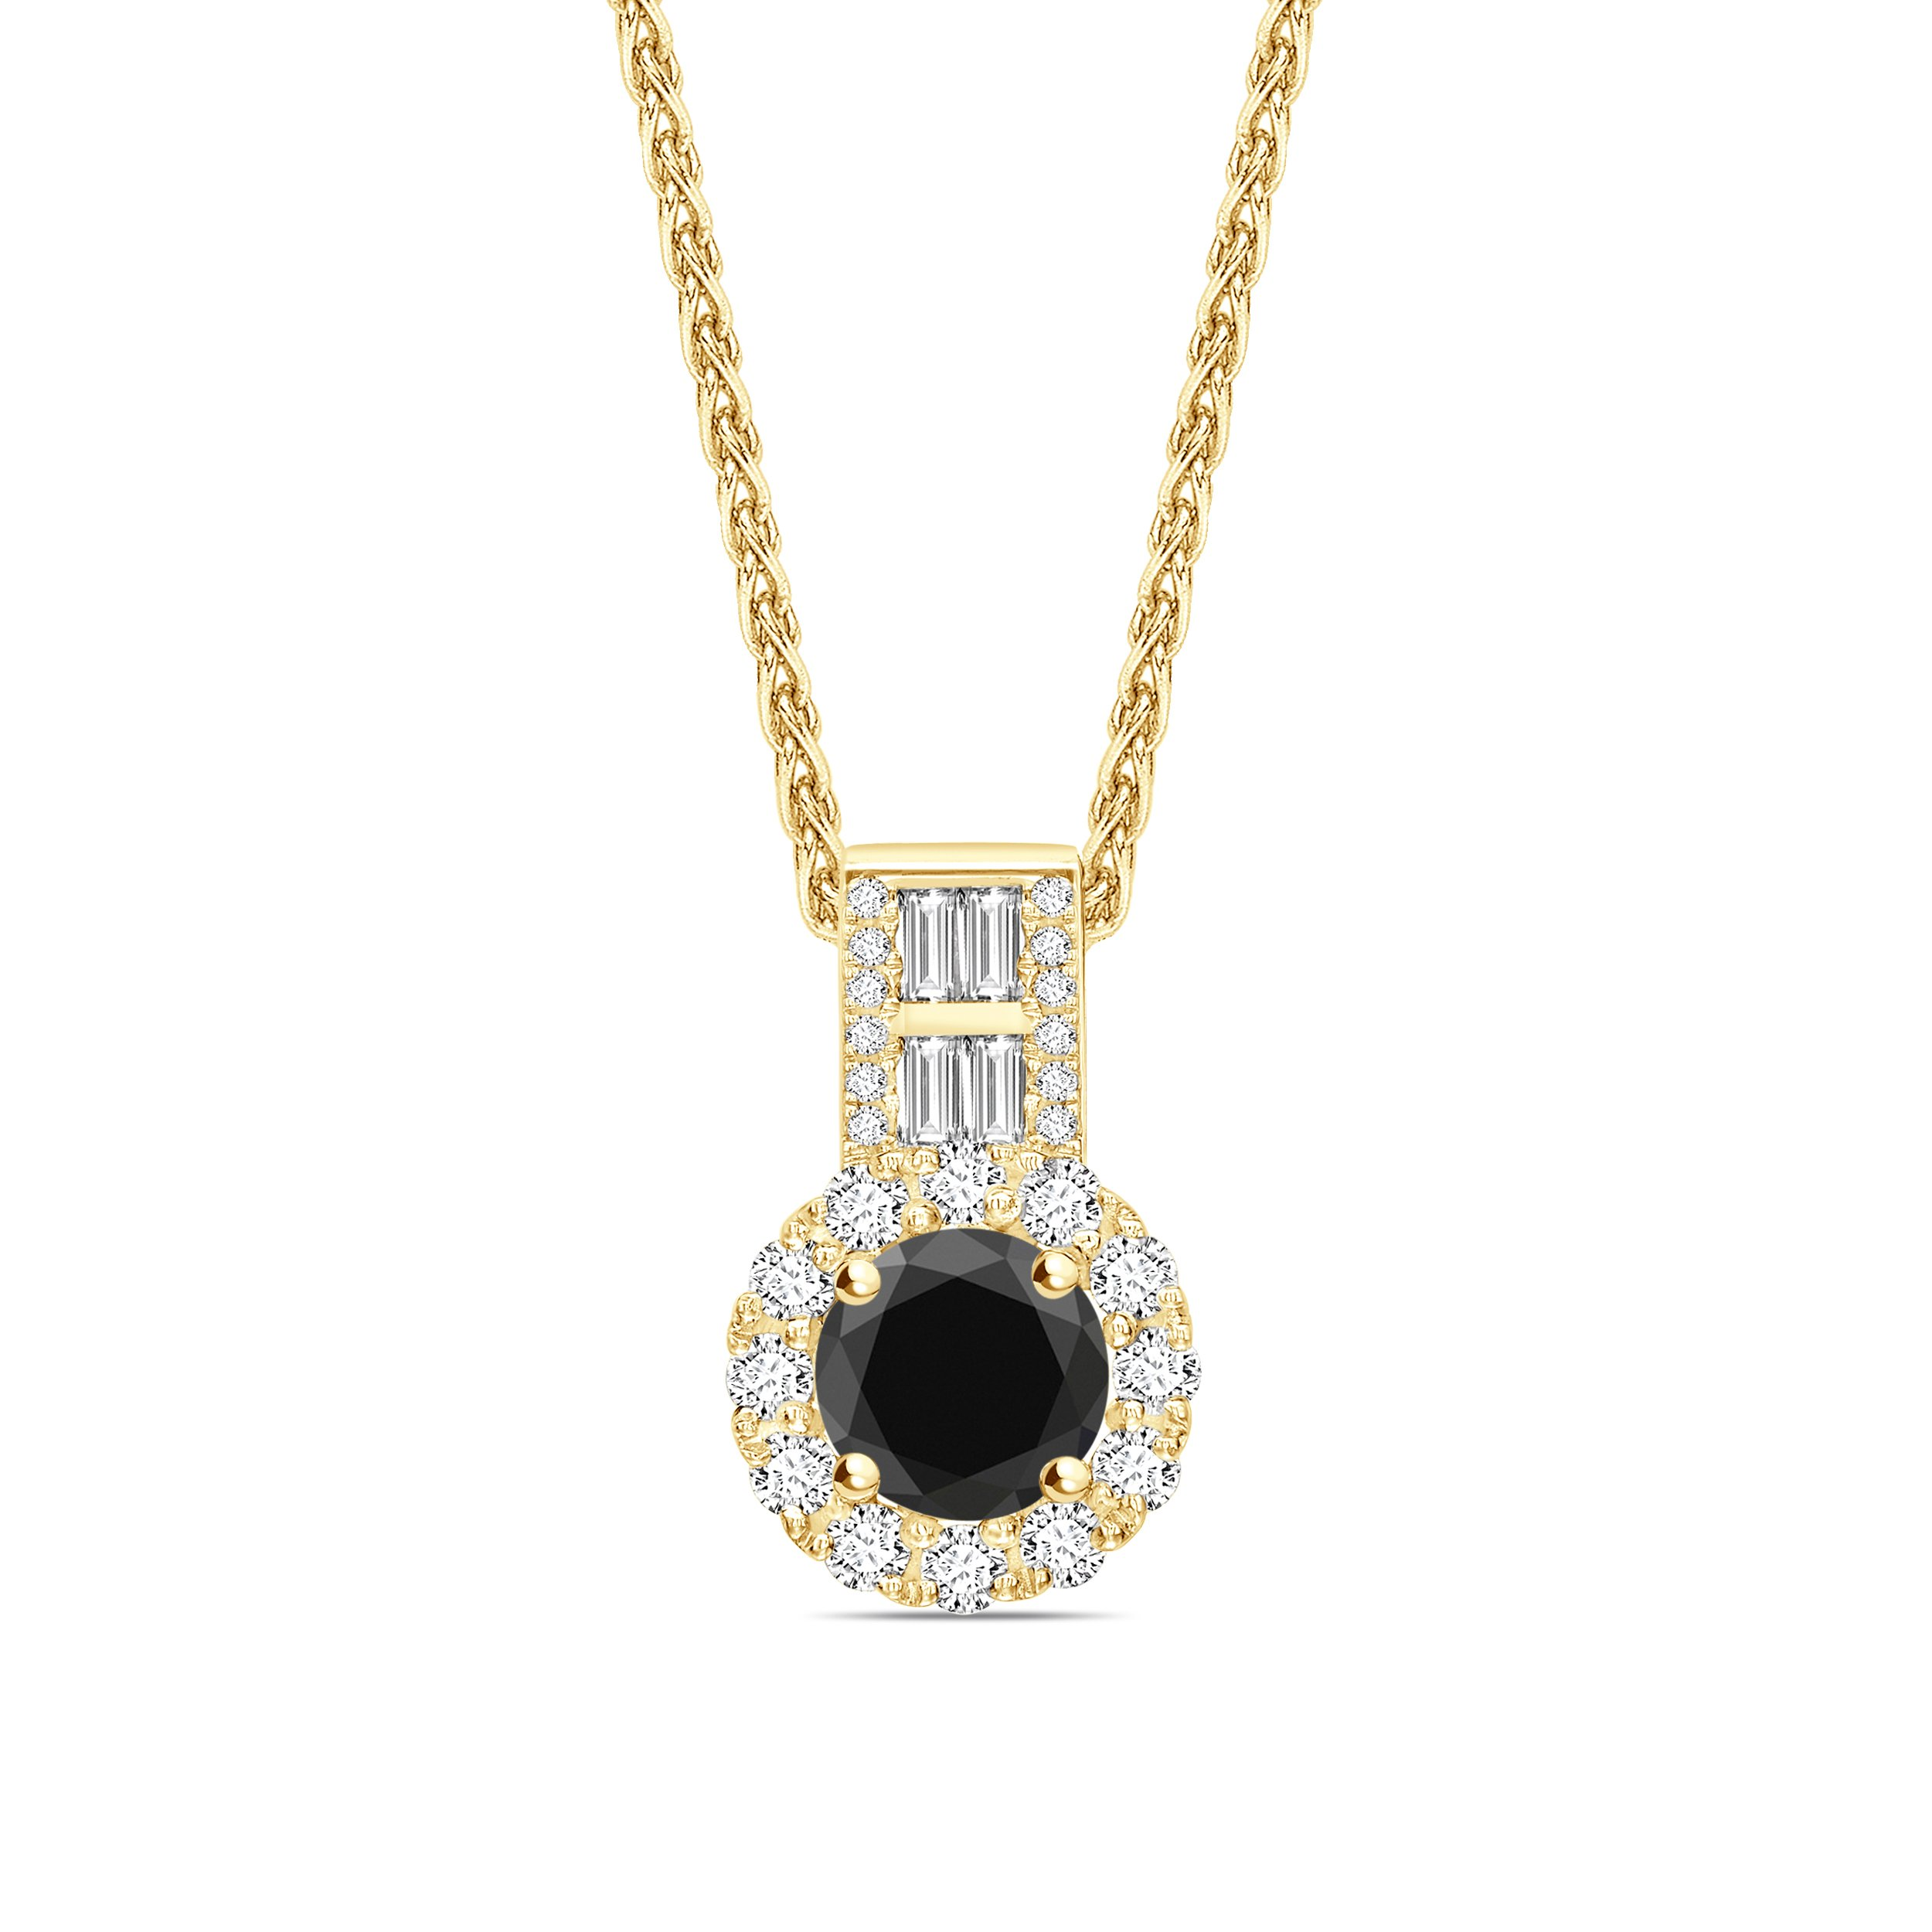 Halo Style Baguette Set Black Diamond Solitaire Pendants Necklace